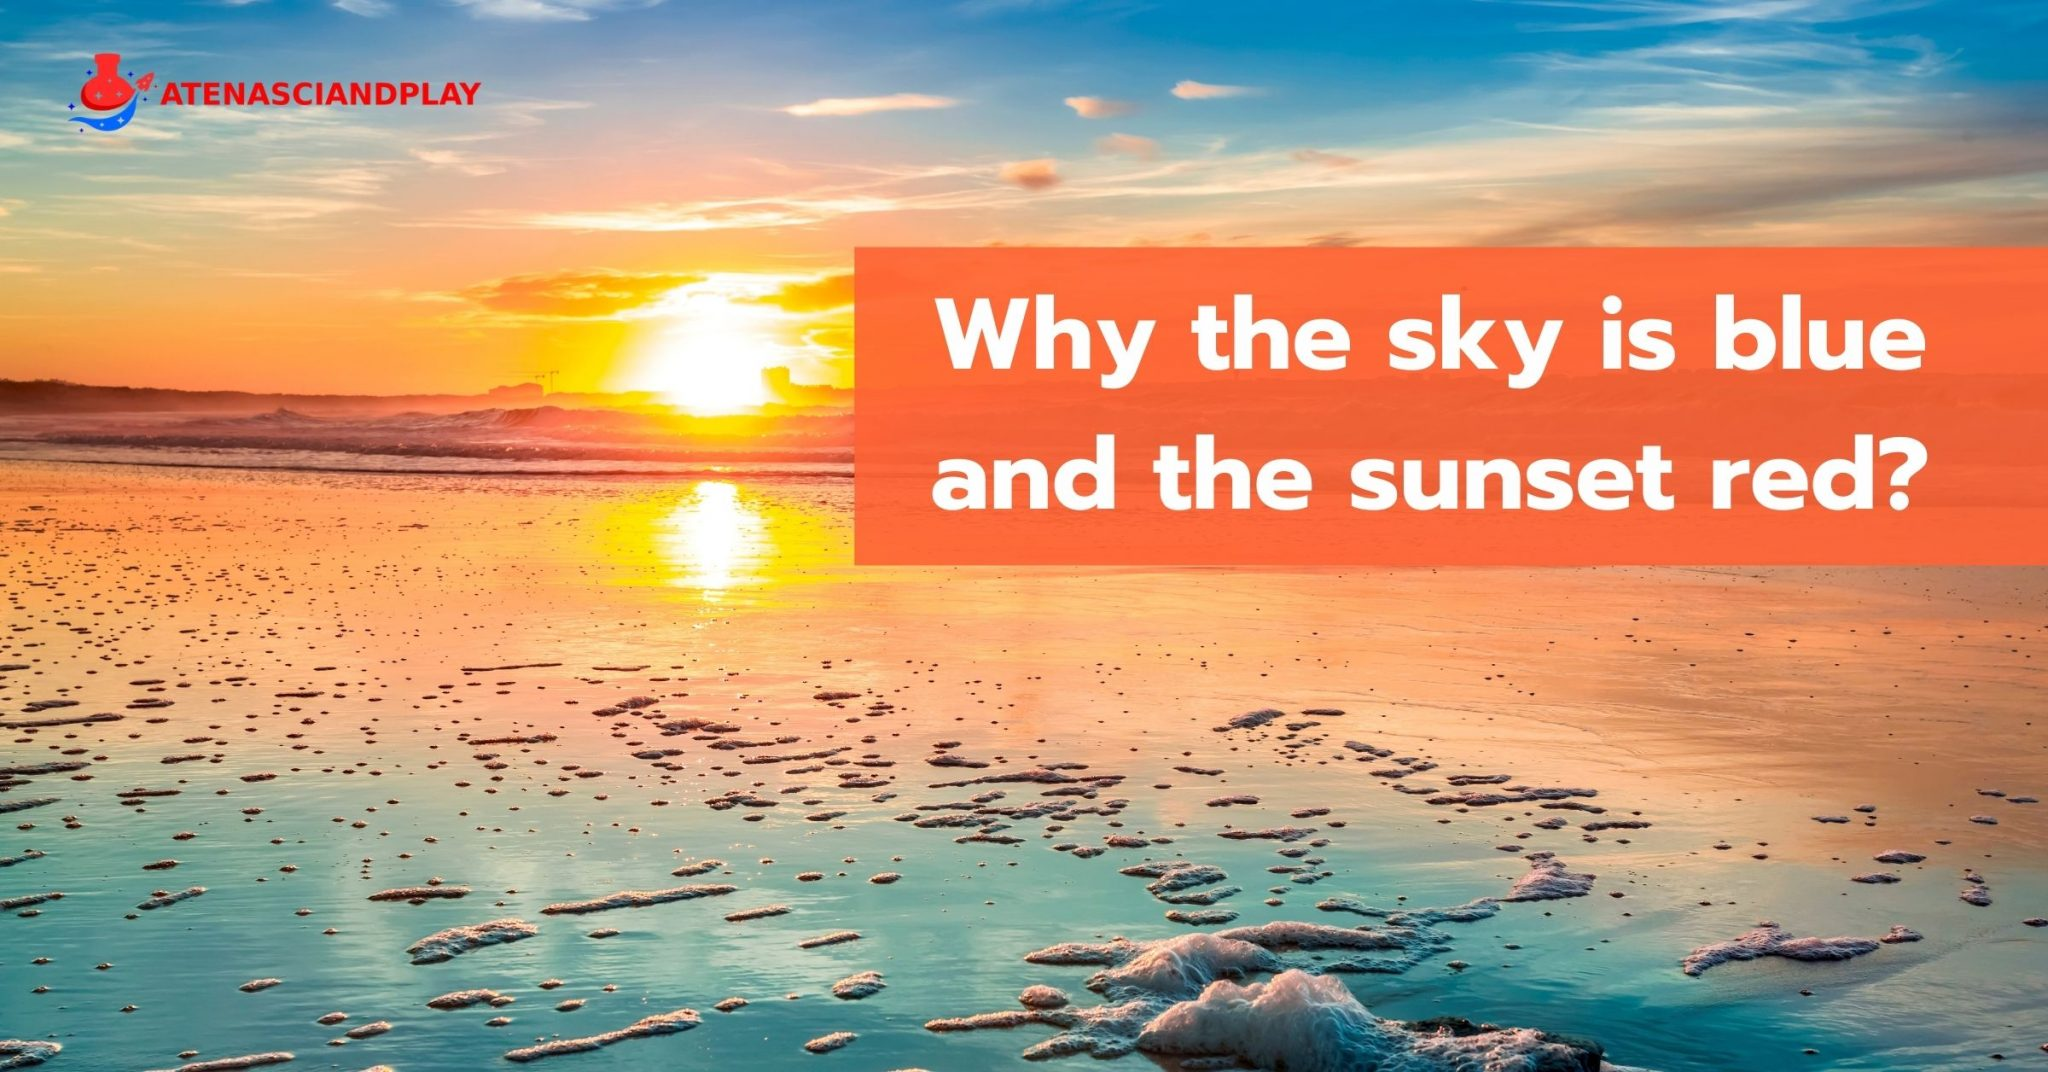 Why the sky is blue and the sunset red?